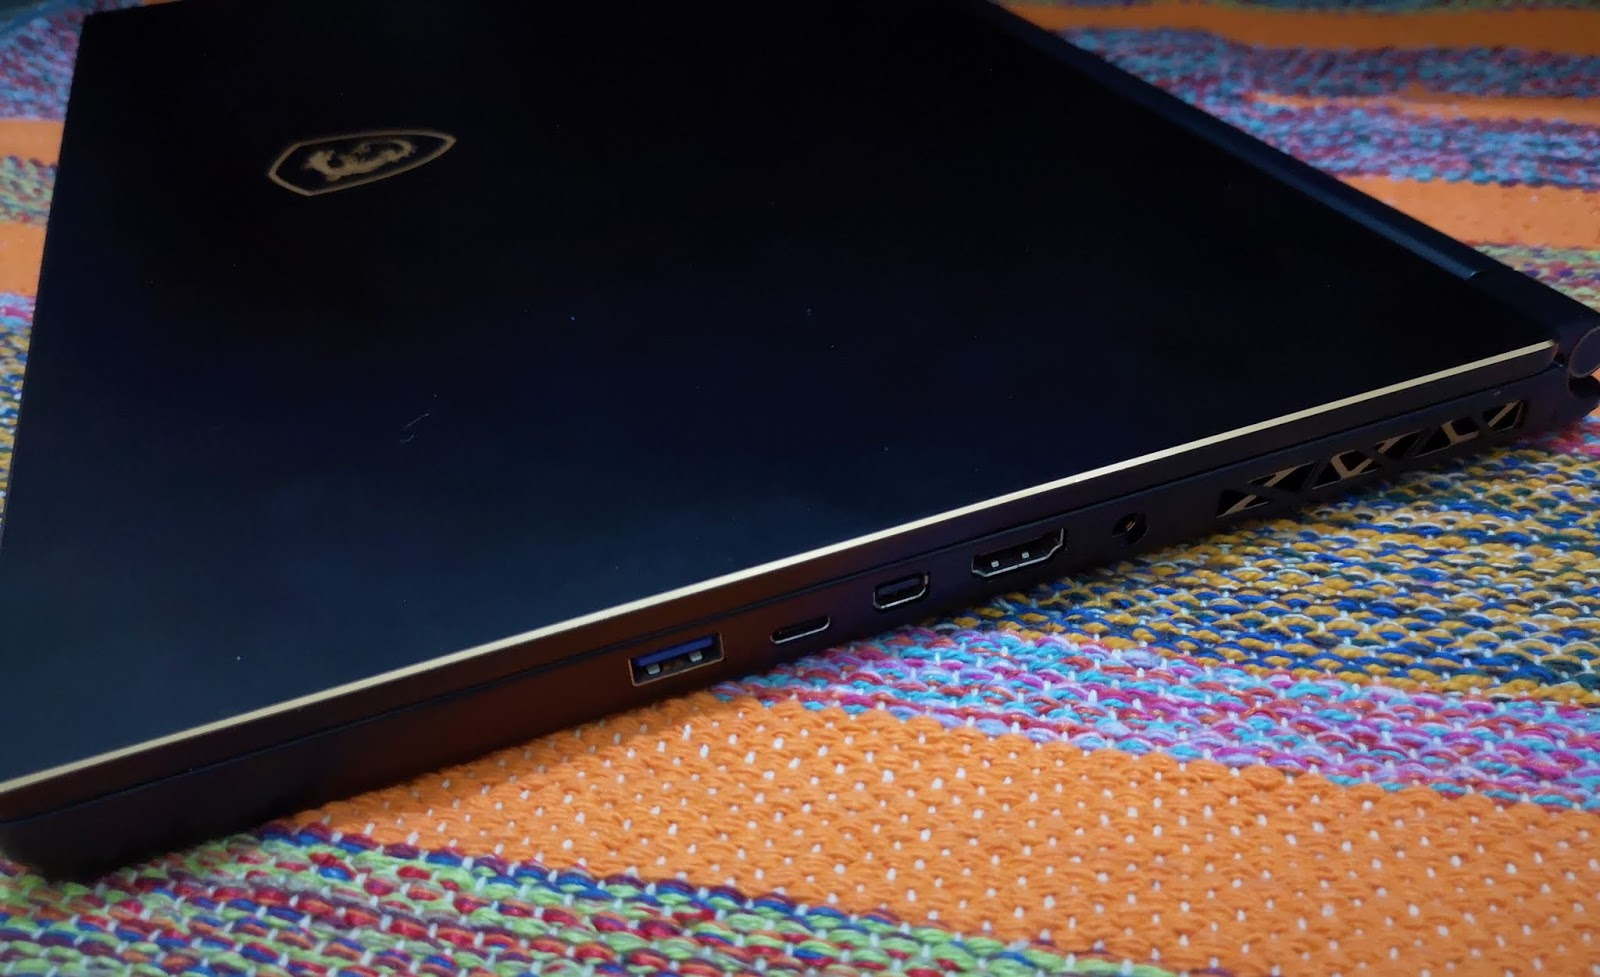 Noob's Guide: MSI GS65 Stealth Thin 8RF Review